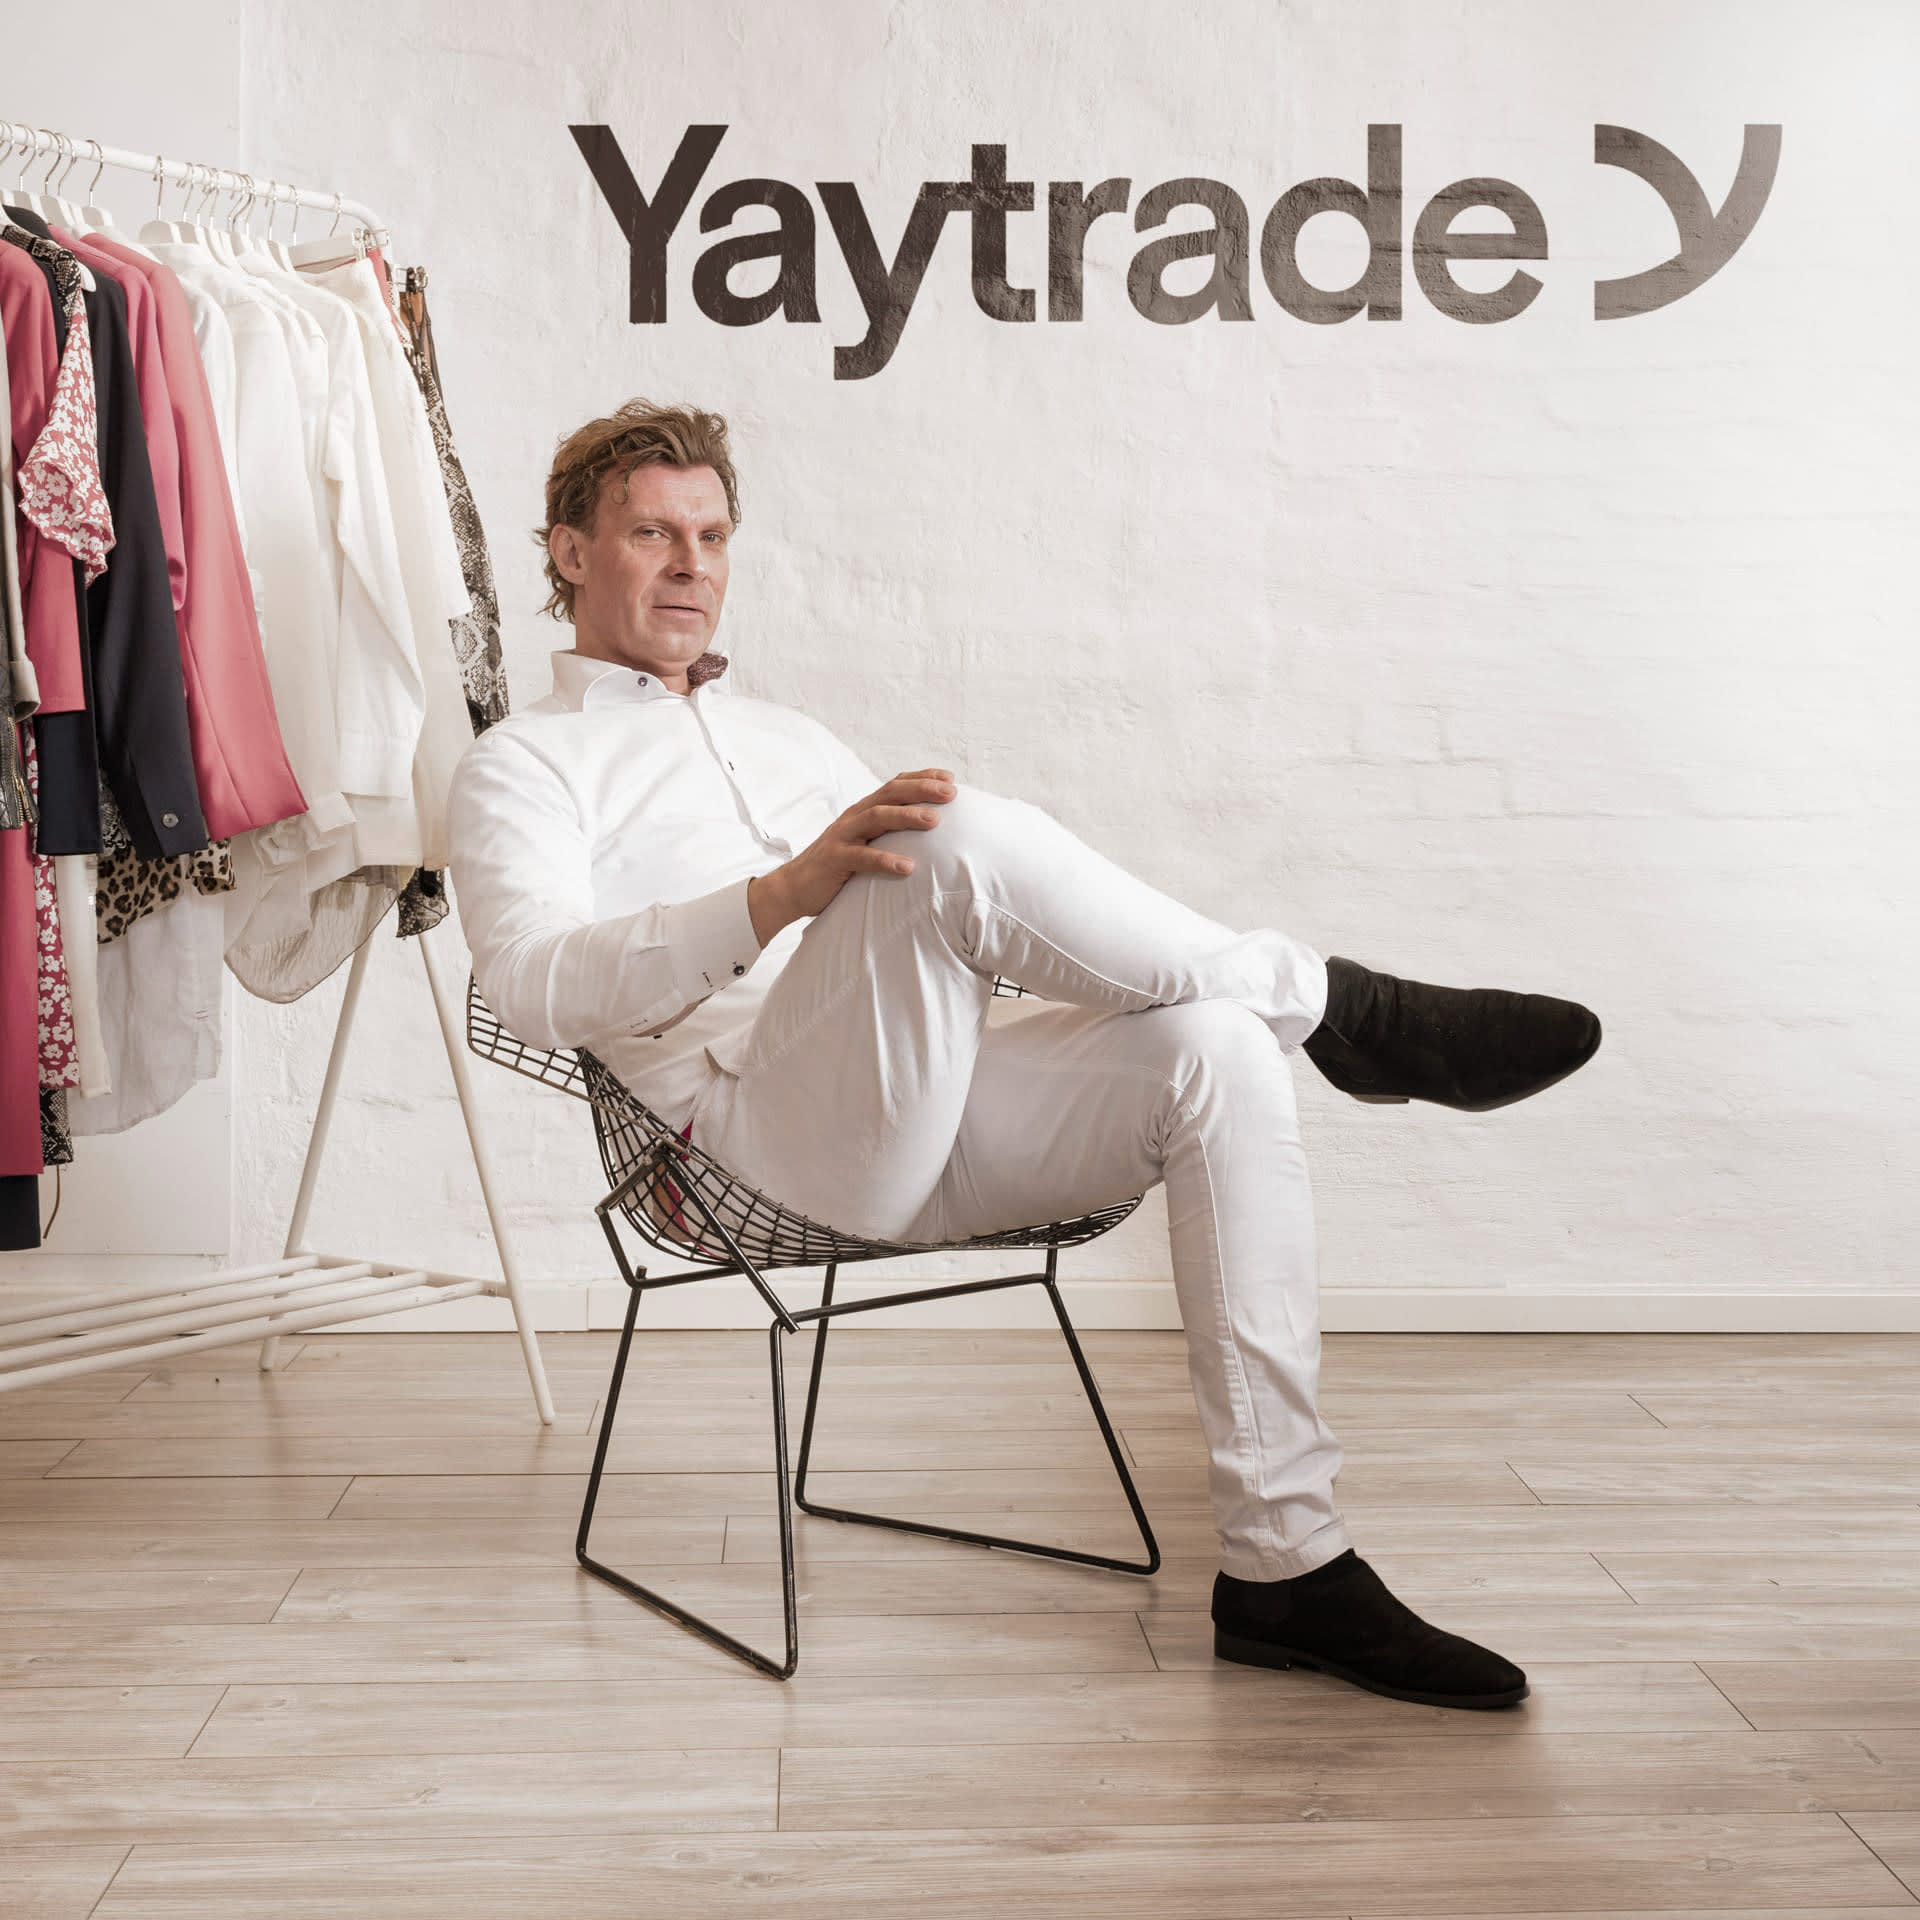 The curtain is raised on Yaytrade Finland – our first international foray